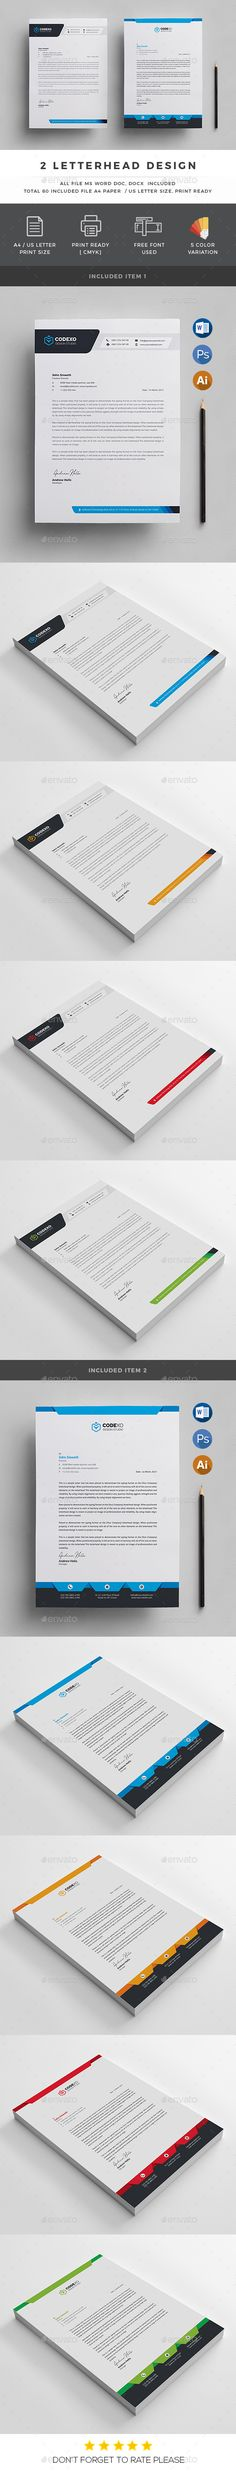 Letterhead Template - Stationery Print Templates Download here: https://graphicriver.net/item/letterhead-template/19666976?ref=classicdesignp